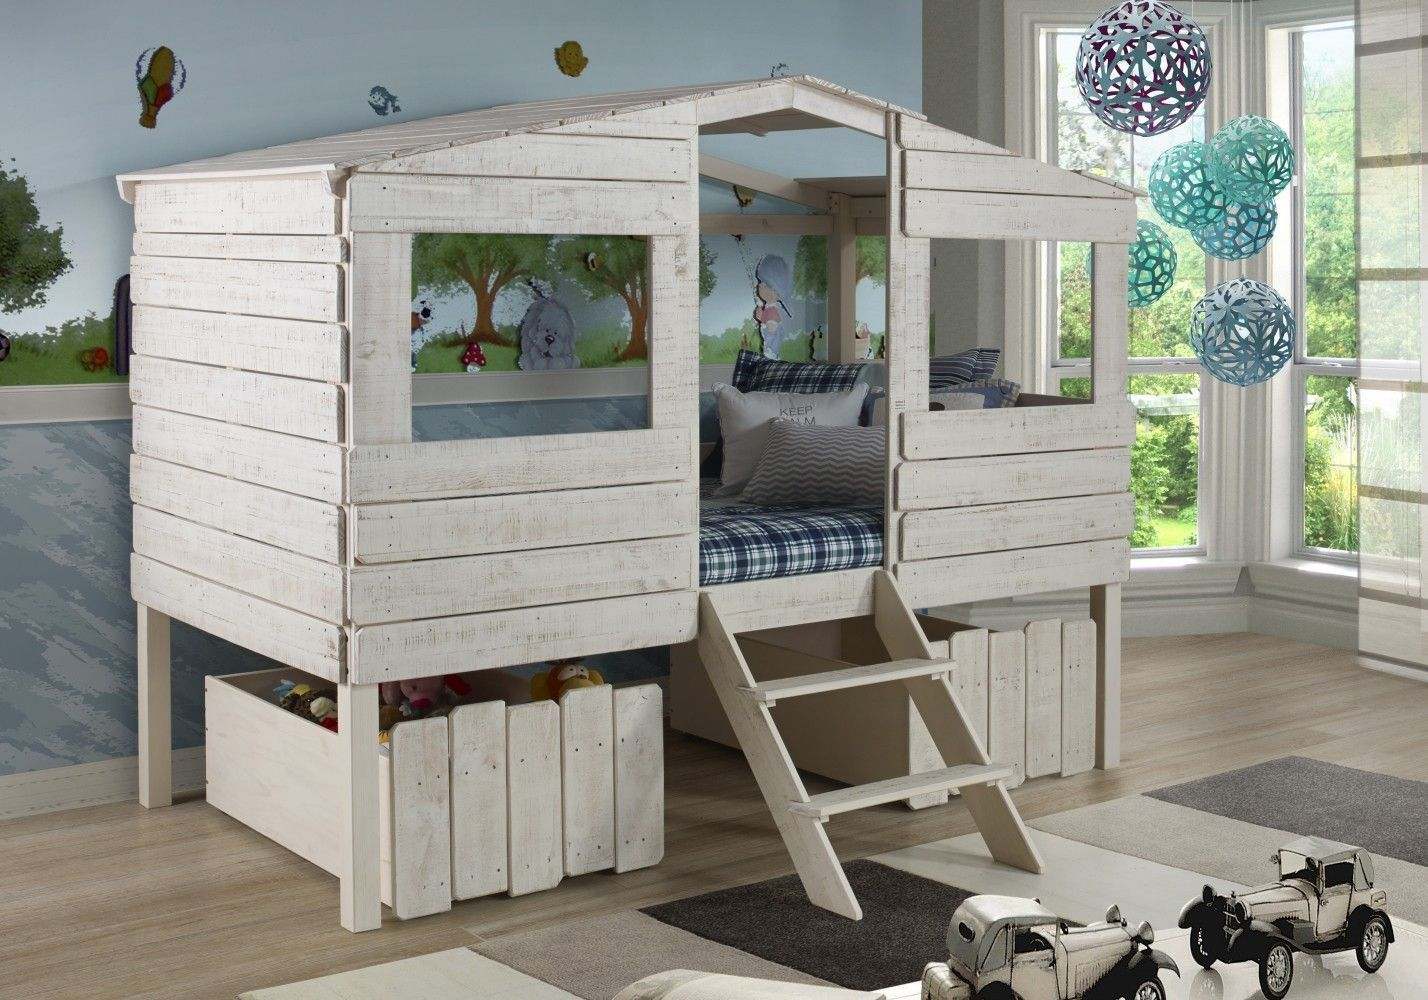 Tree house loft beds for kids with storage drawers storage drawers